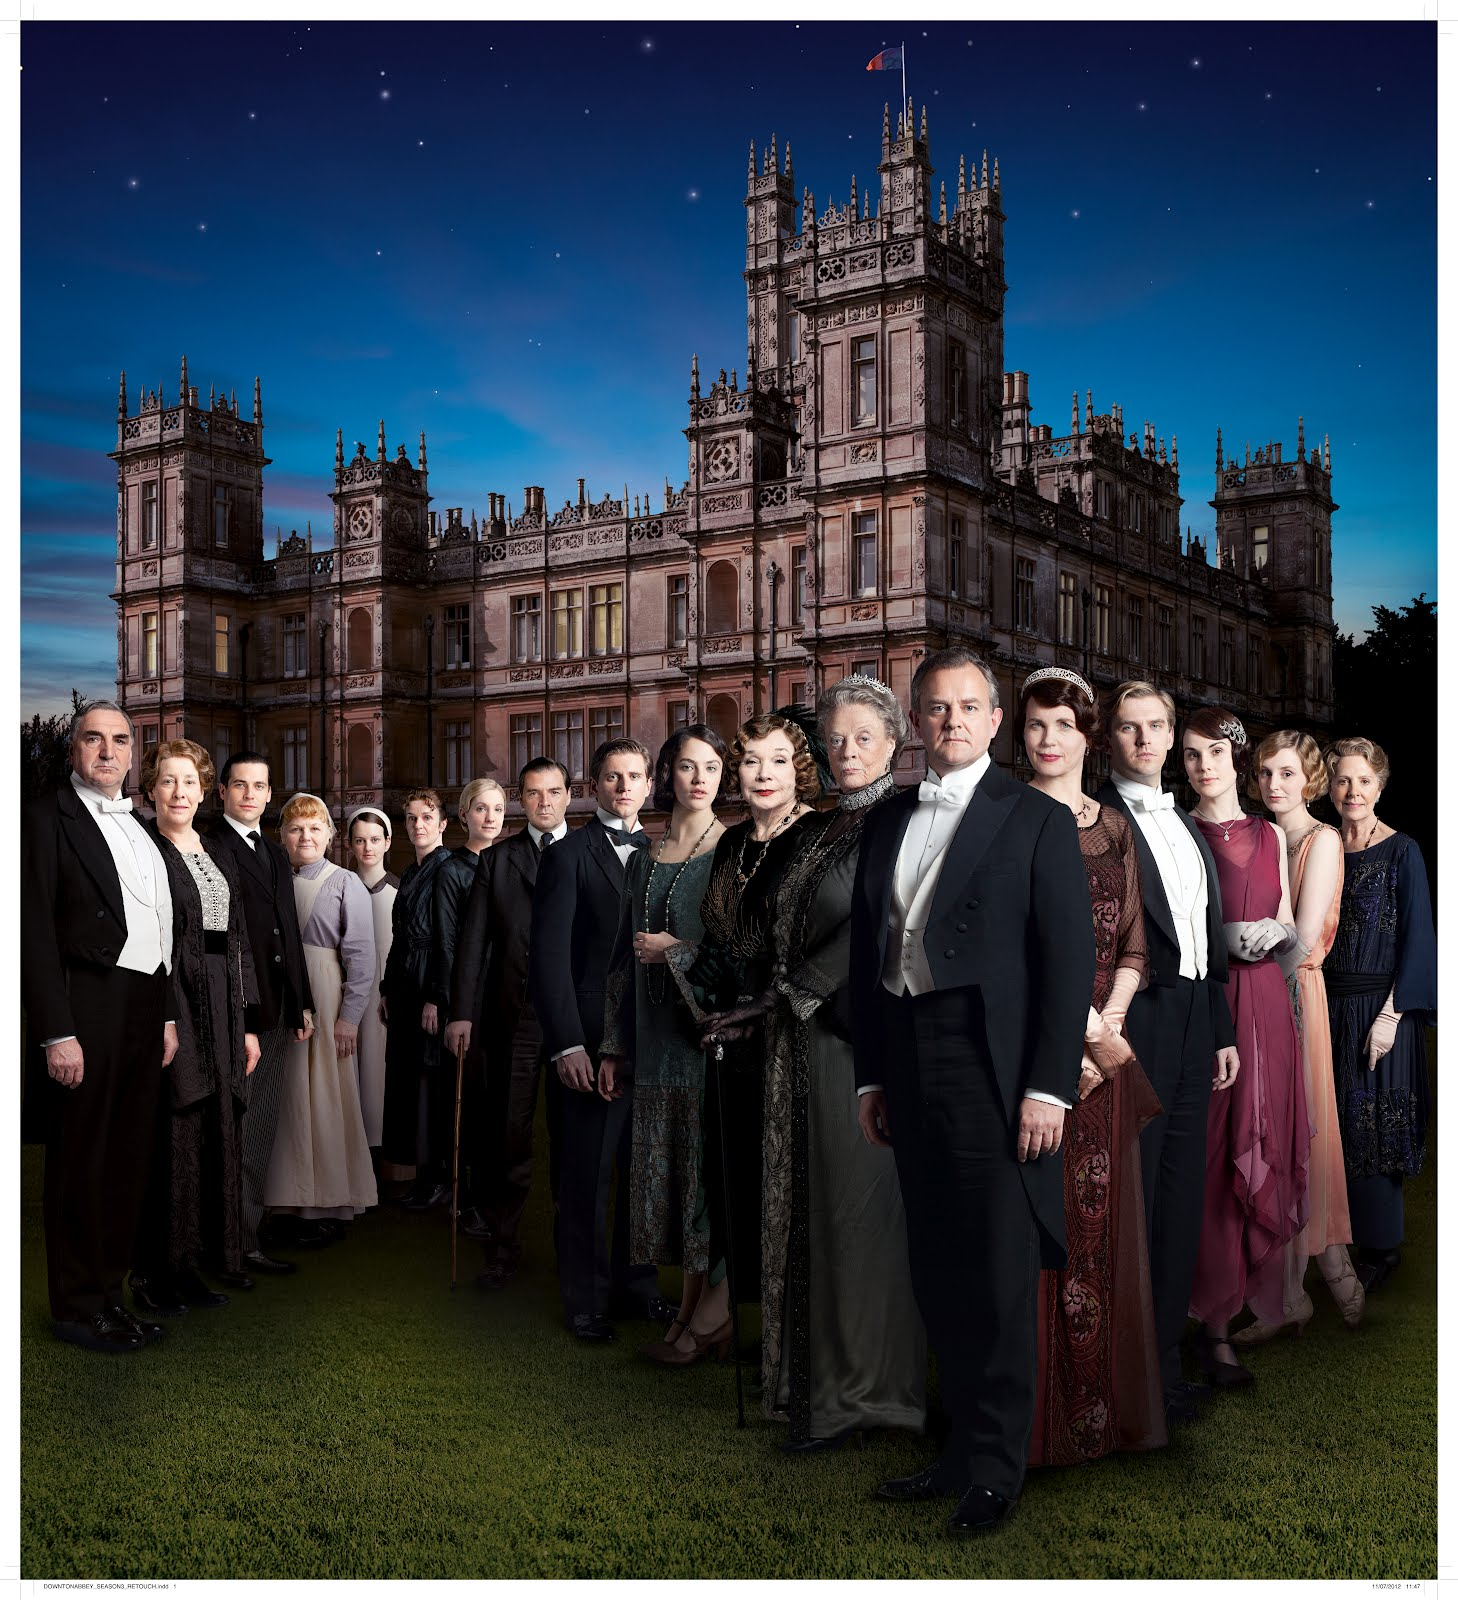 Downton Abbey by Carnival Films